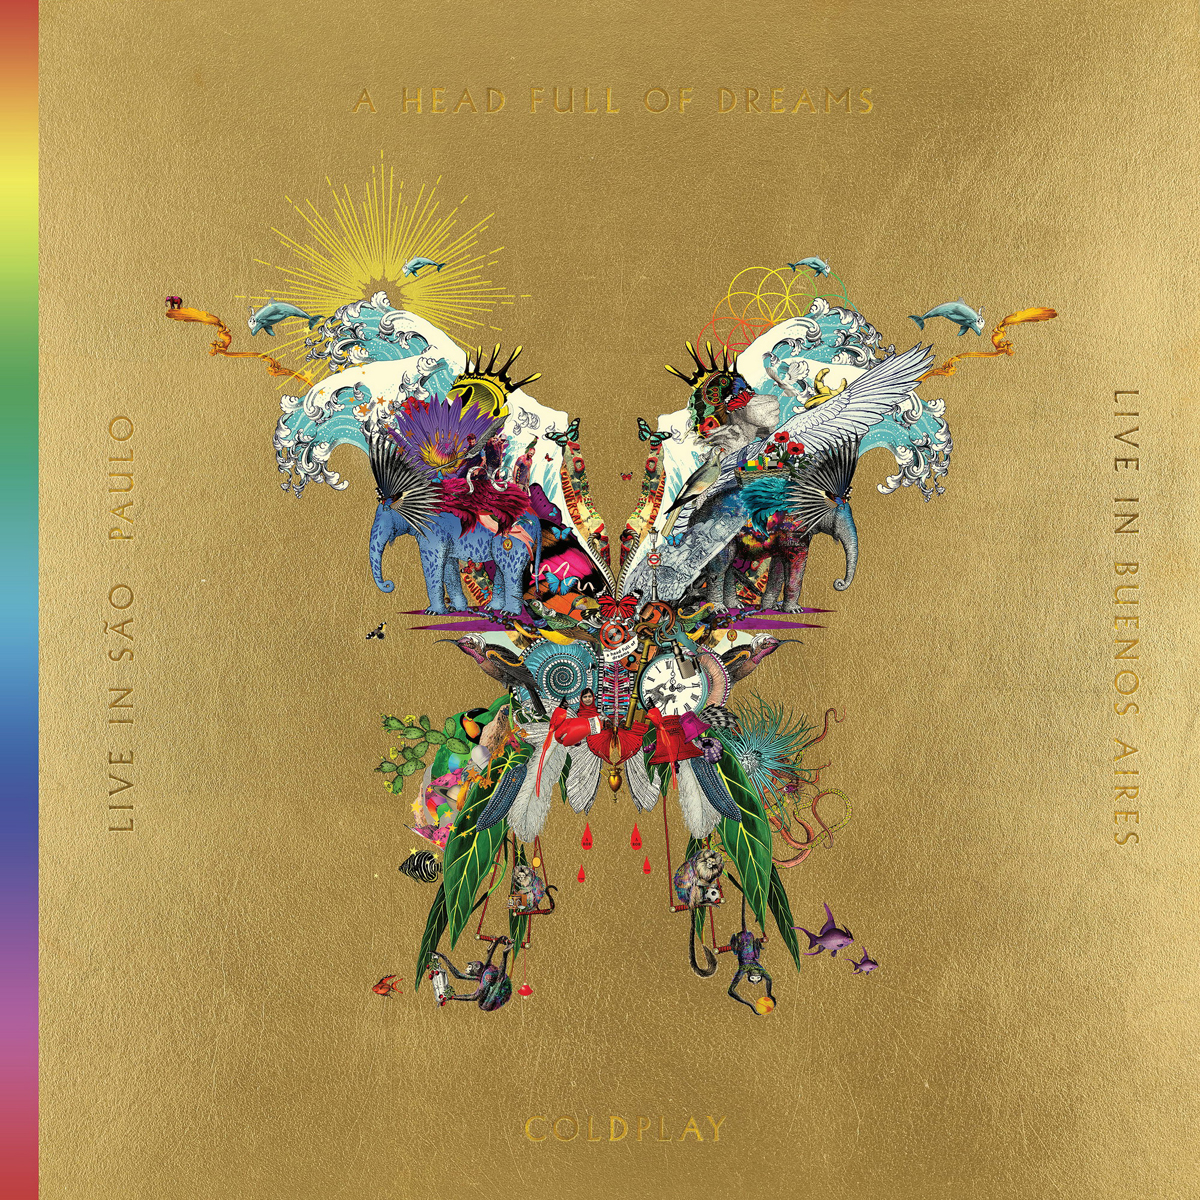 Coldplay Coldplay. Live In Buenos Aires / Live In Sao Paulo / A Head Full Of Dreams (3 LP + 2 DVD)